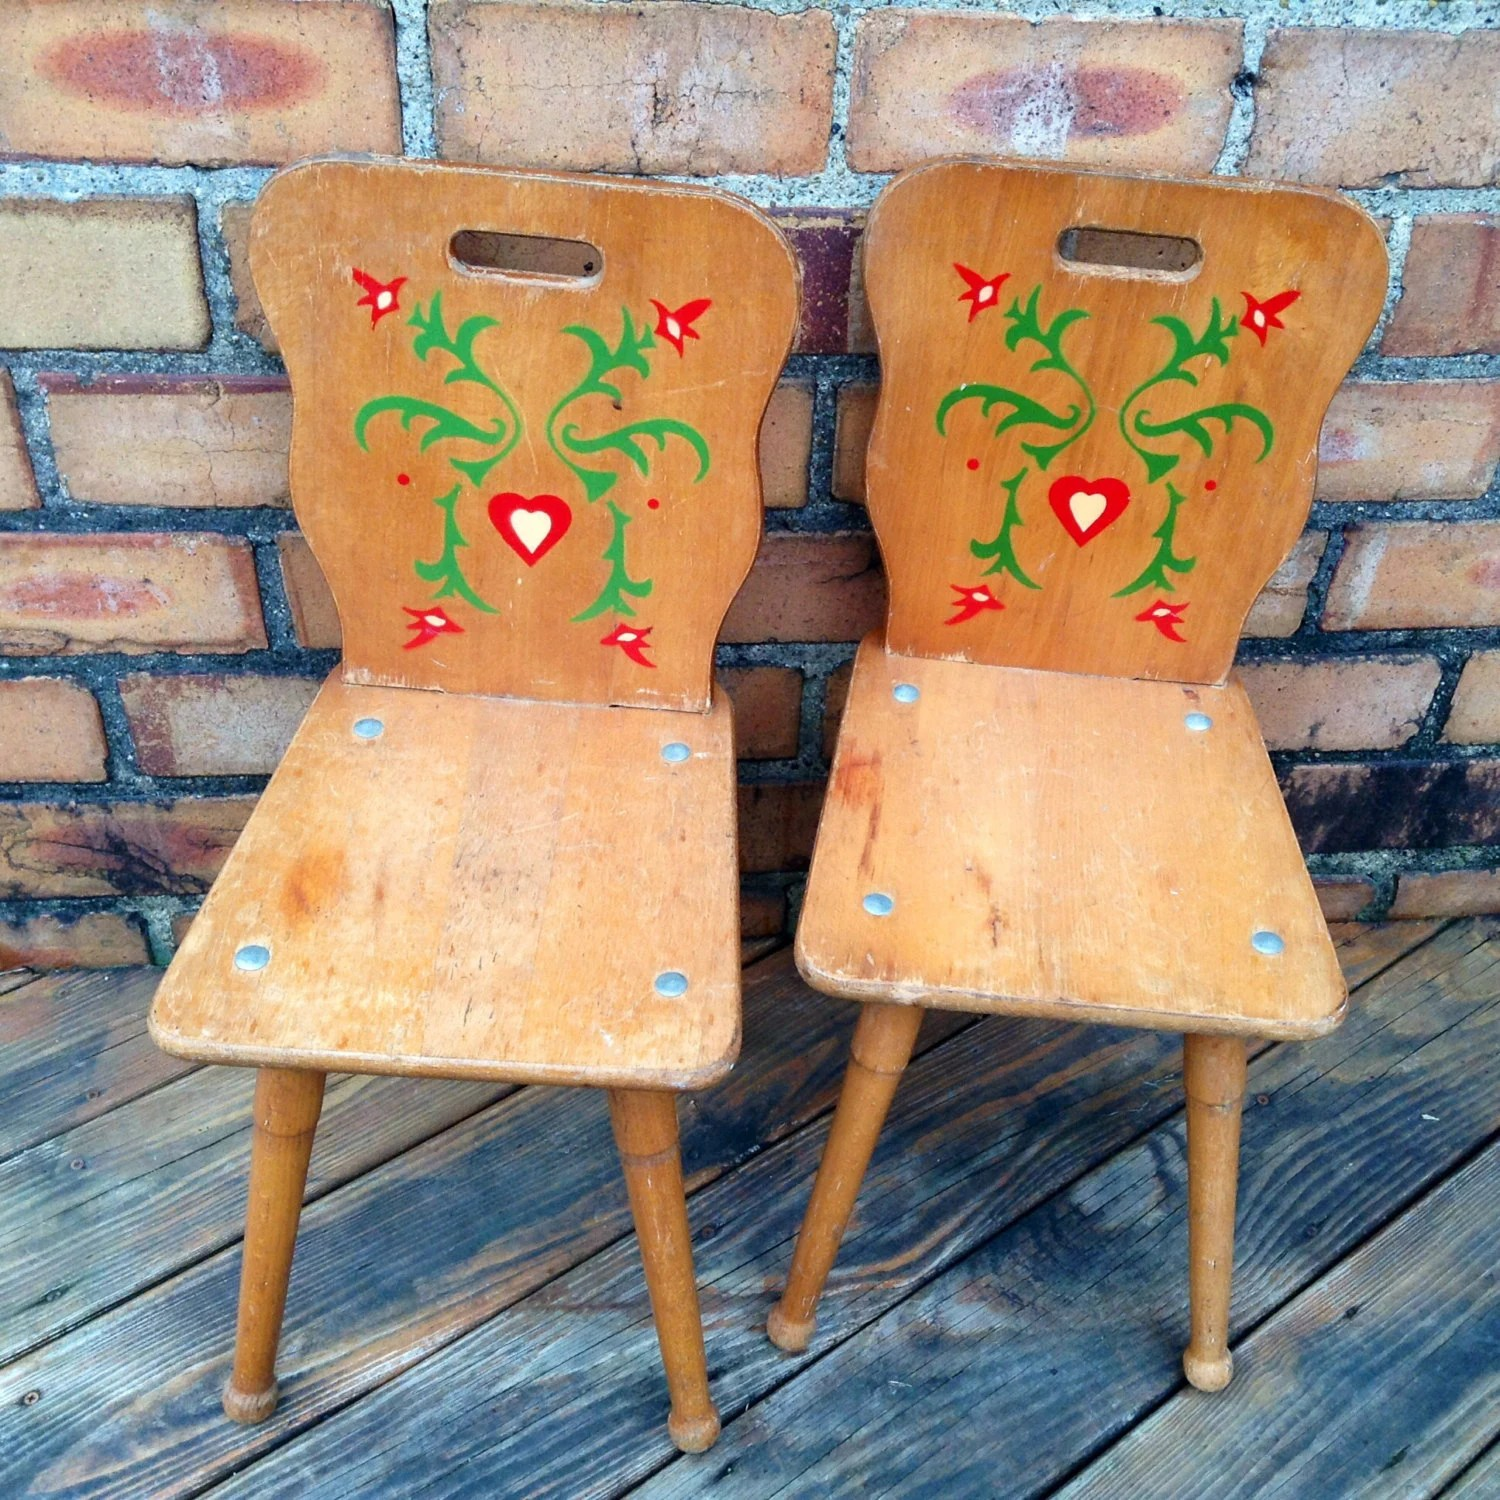 solid oak pressed back chairs desk chair armrest very rare pair of wood pennsylvania dutch folk